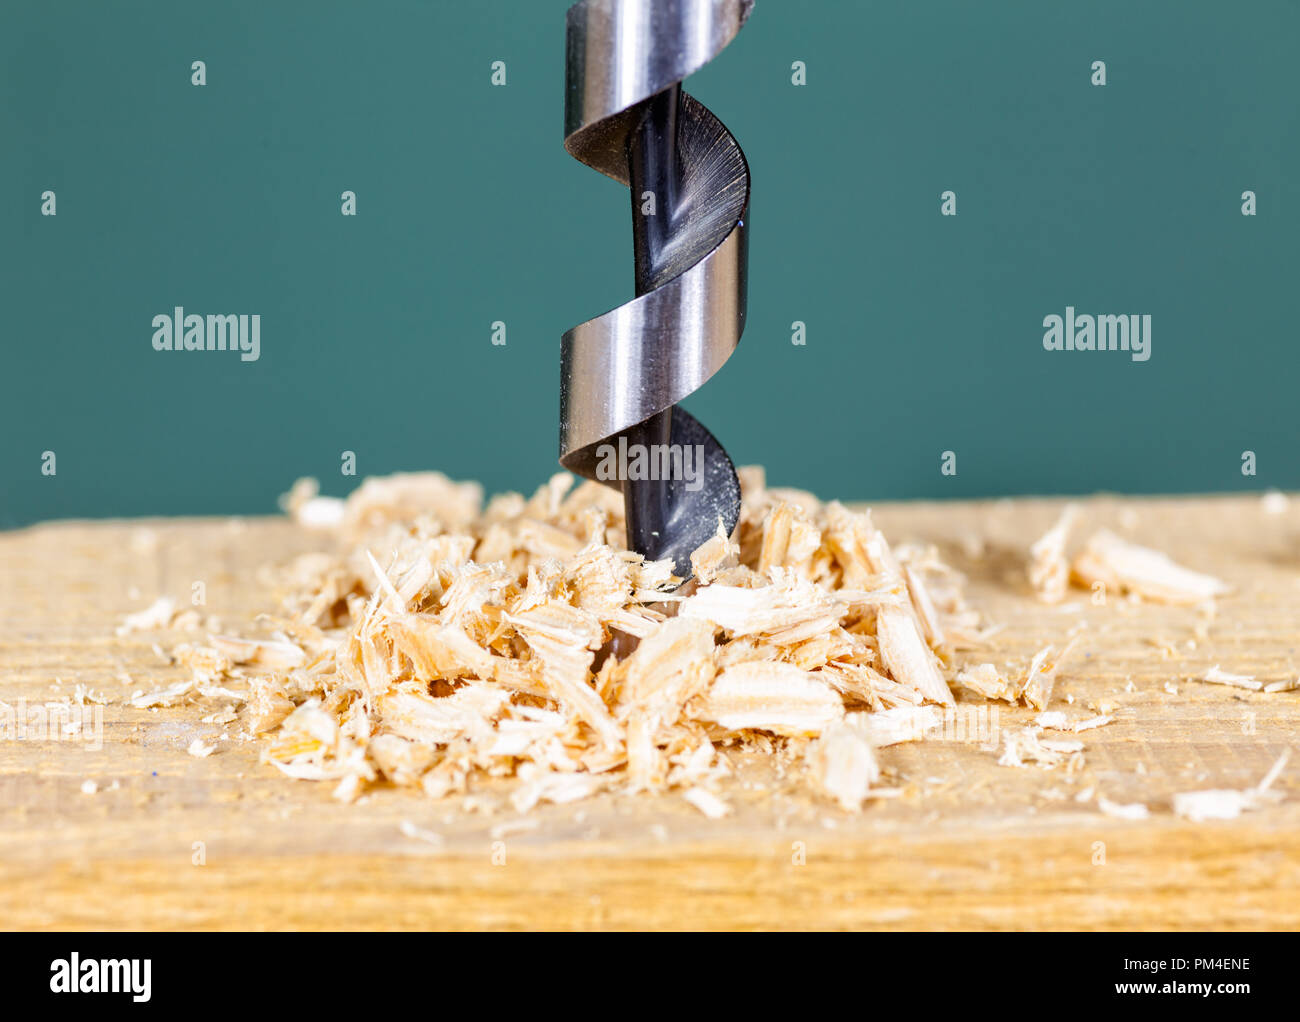 Wood drill bit with shavings - Stock Image